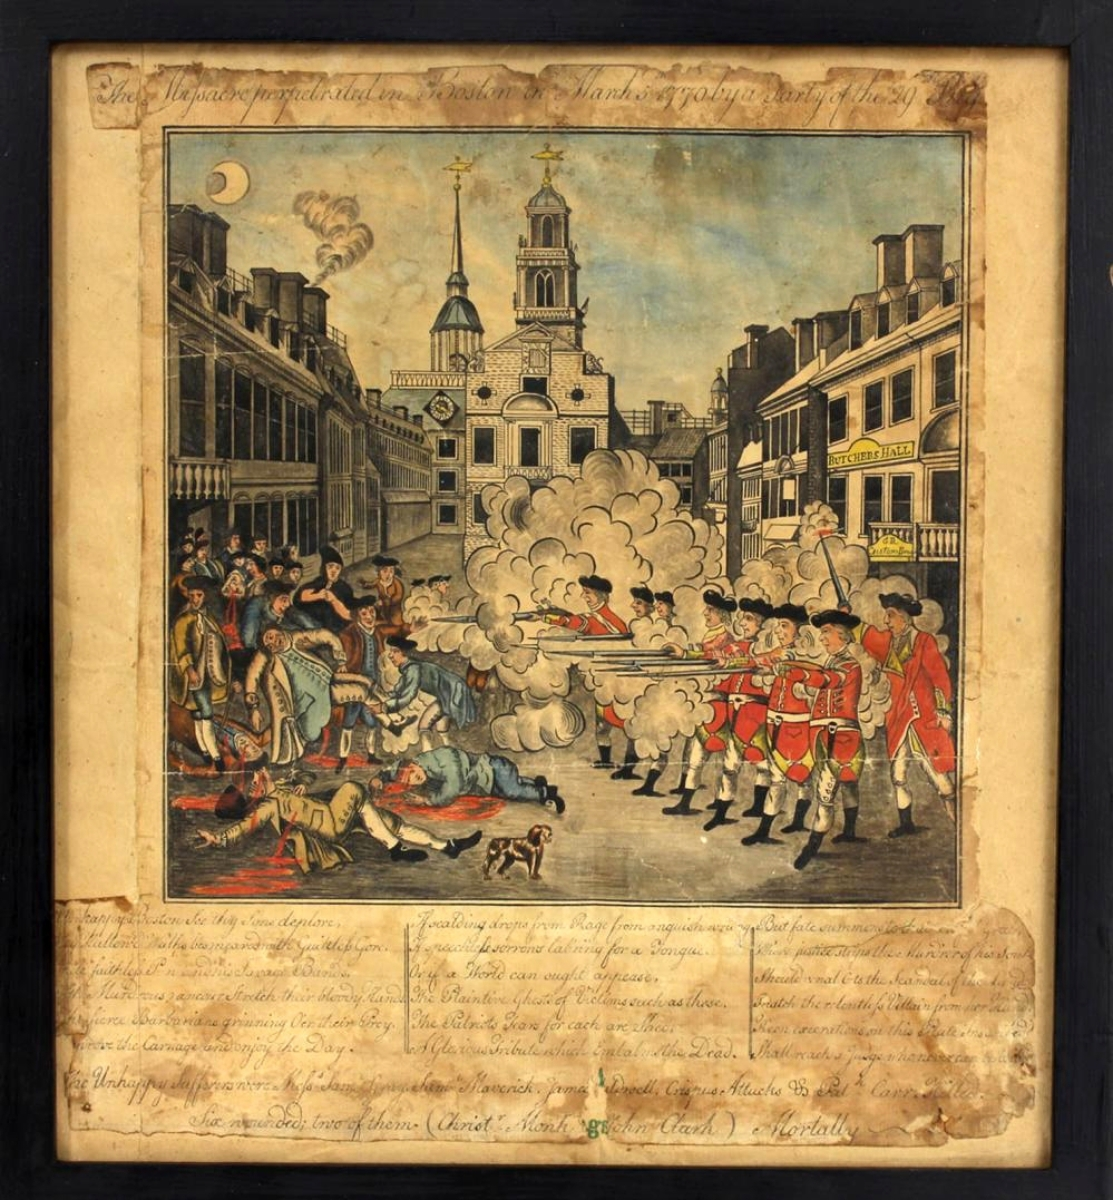 "When Chris Bryant, independent scholar and investor in the room, paid $21,600 for this watercolor rendering of Paul Revere's iconic ""The Bloody Massacre,"" he said, ""This may be the buy of a lifetime."" It has impeccable provenance and was cataloged as perhaps having been done by Christian Remick, known to have worked with Revere. The script below the image may be in Revere's hand and is presently being researched. Revere's engraving has been challenged as not being his, and this watercolor raises questions about its chronology that may soon be answered."